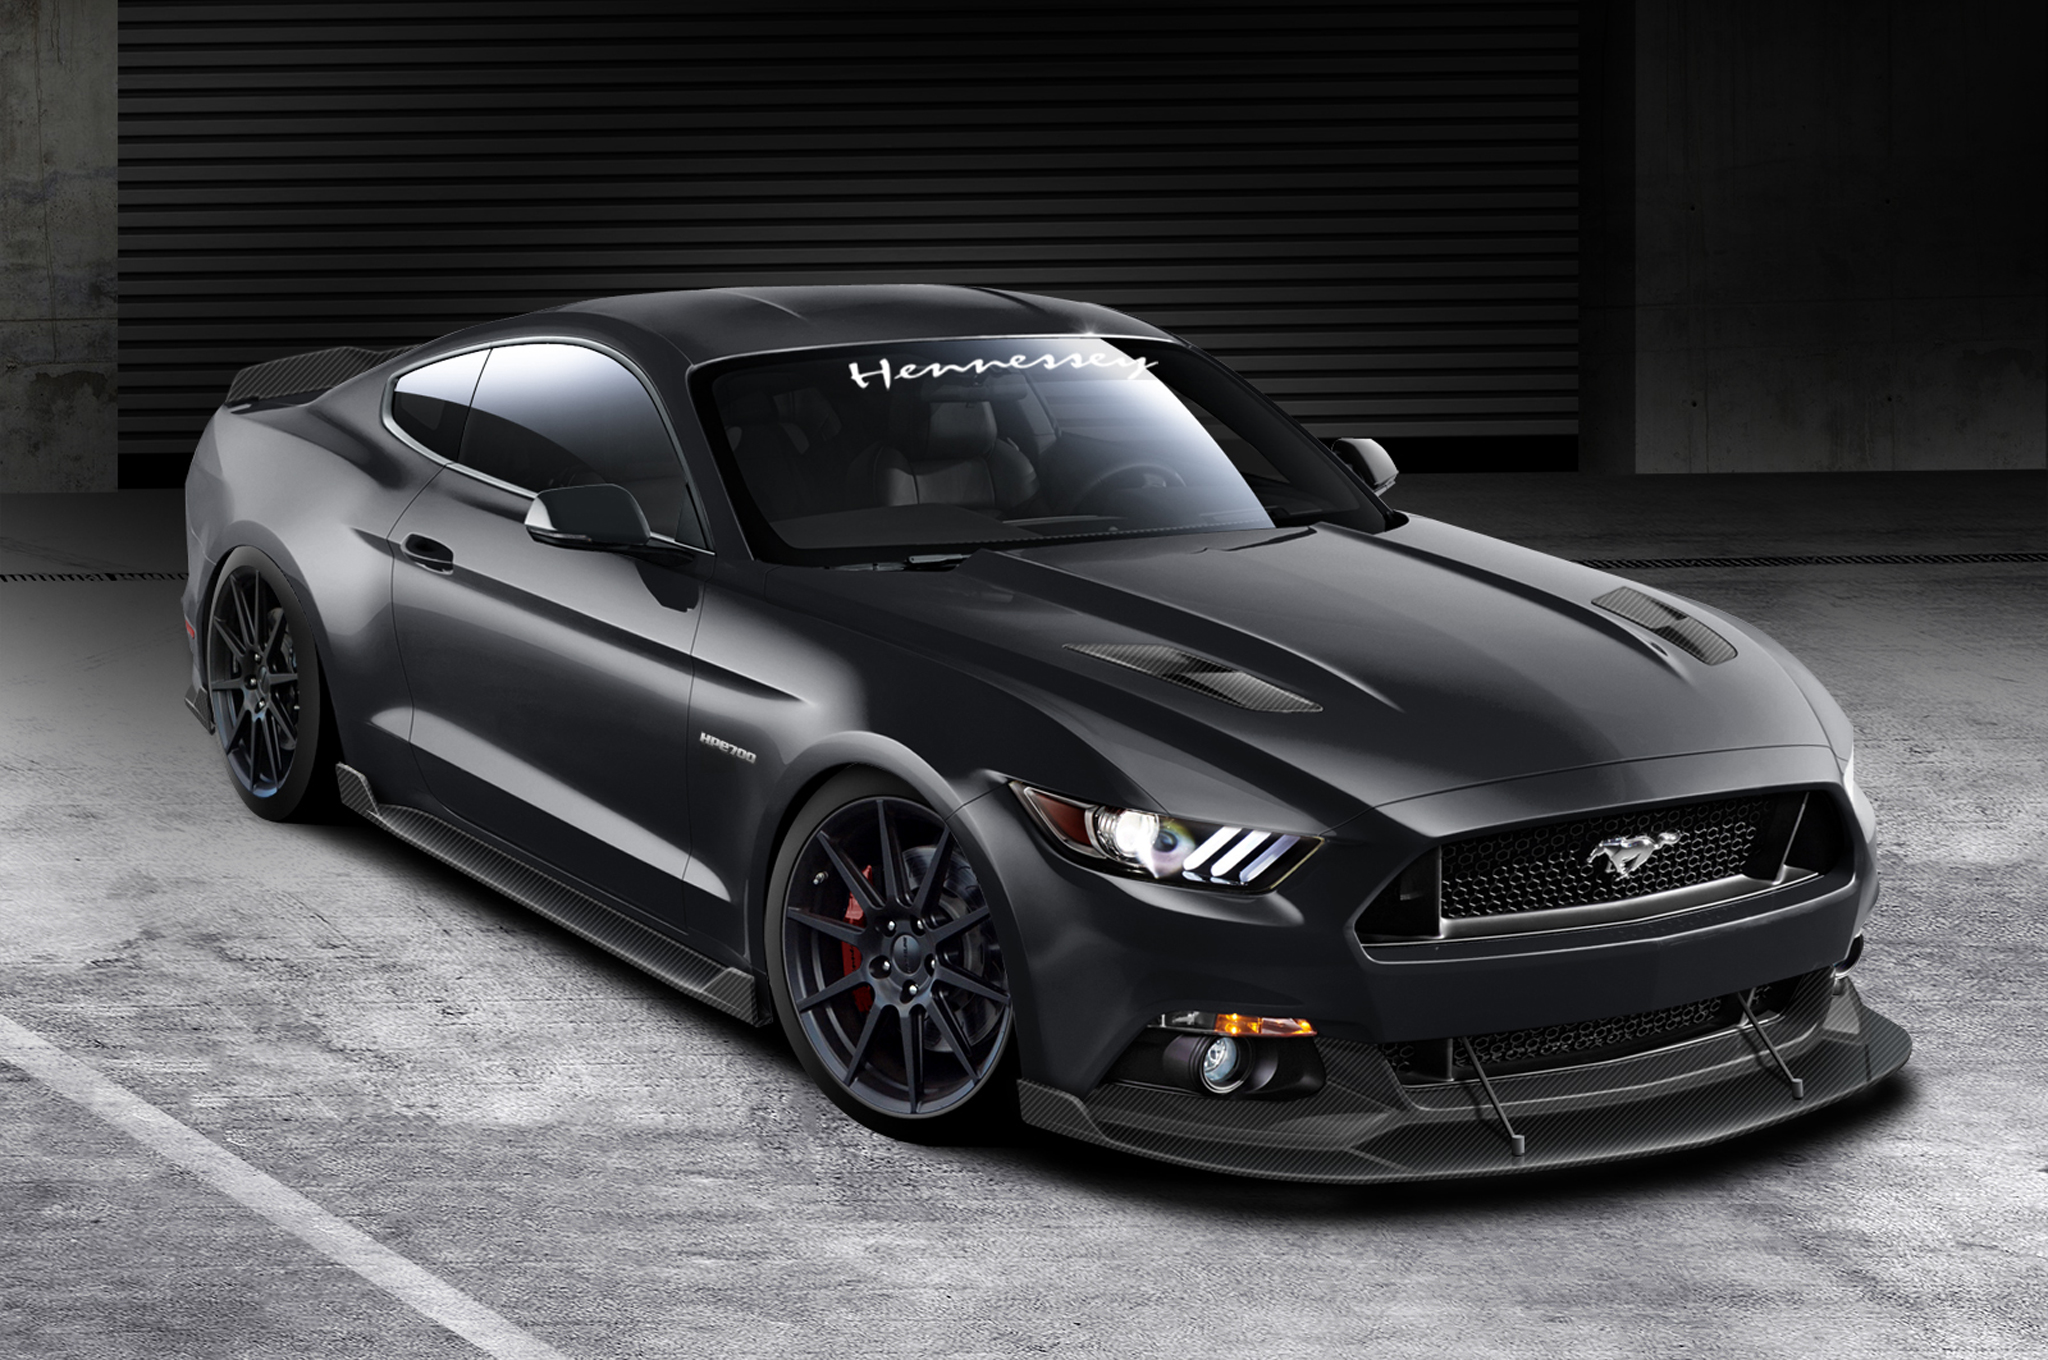 Hennessey 2015 Ford Mustang HPE700 Makes 717 HP